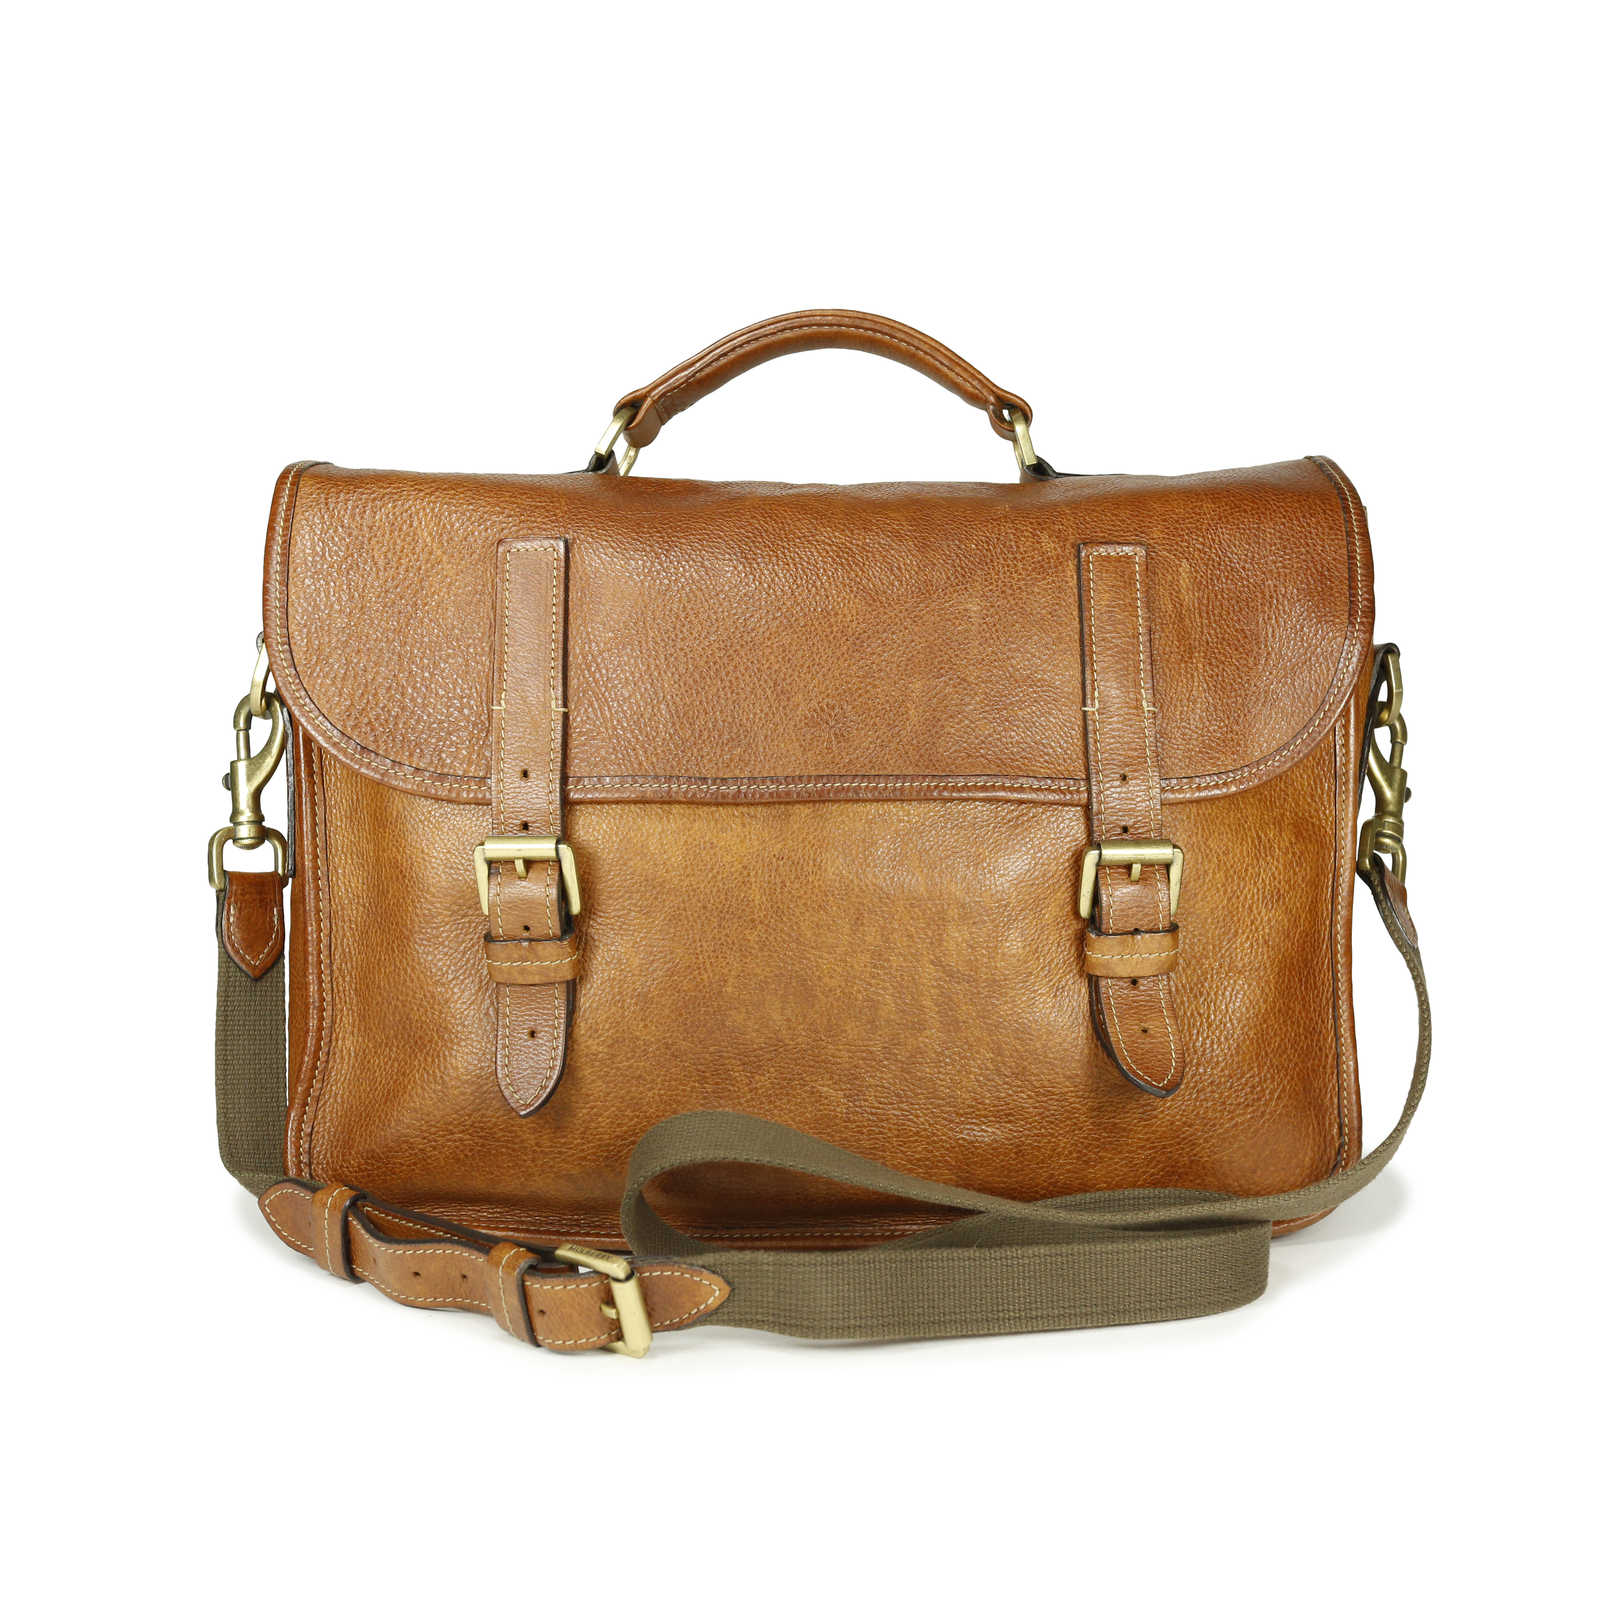 Authentic Pre Owned Mulberry Leather Elkington Briefcase Pss 169 00006 Thumbnail